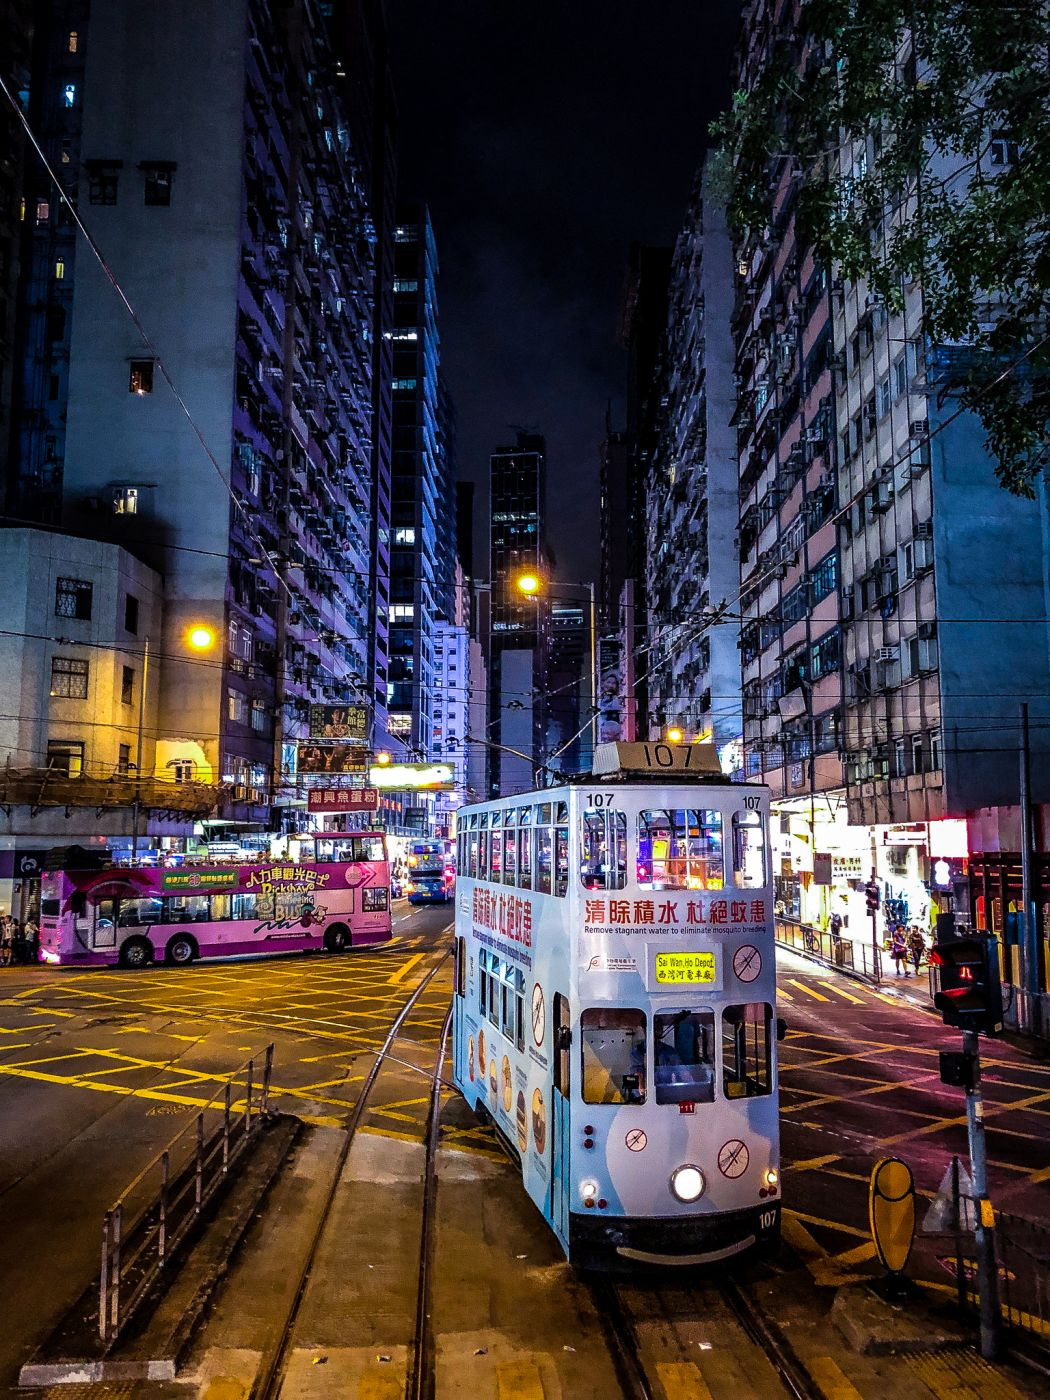 Old trams and busses, Hong Kong